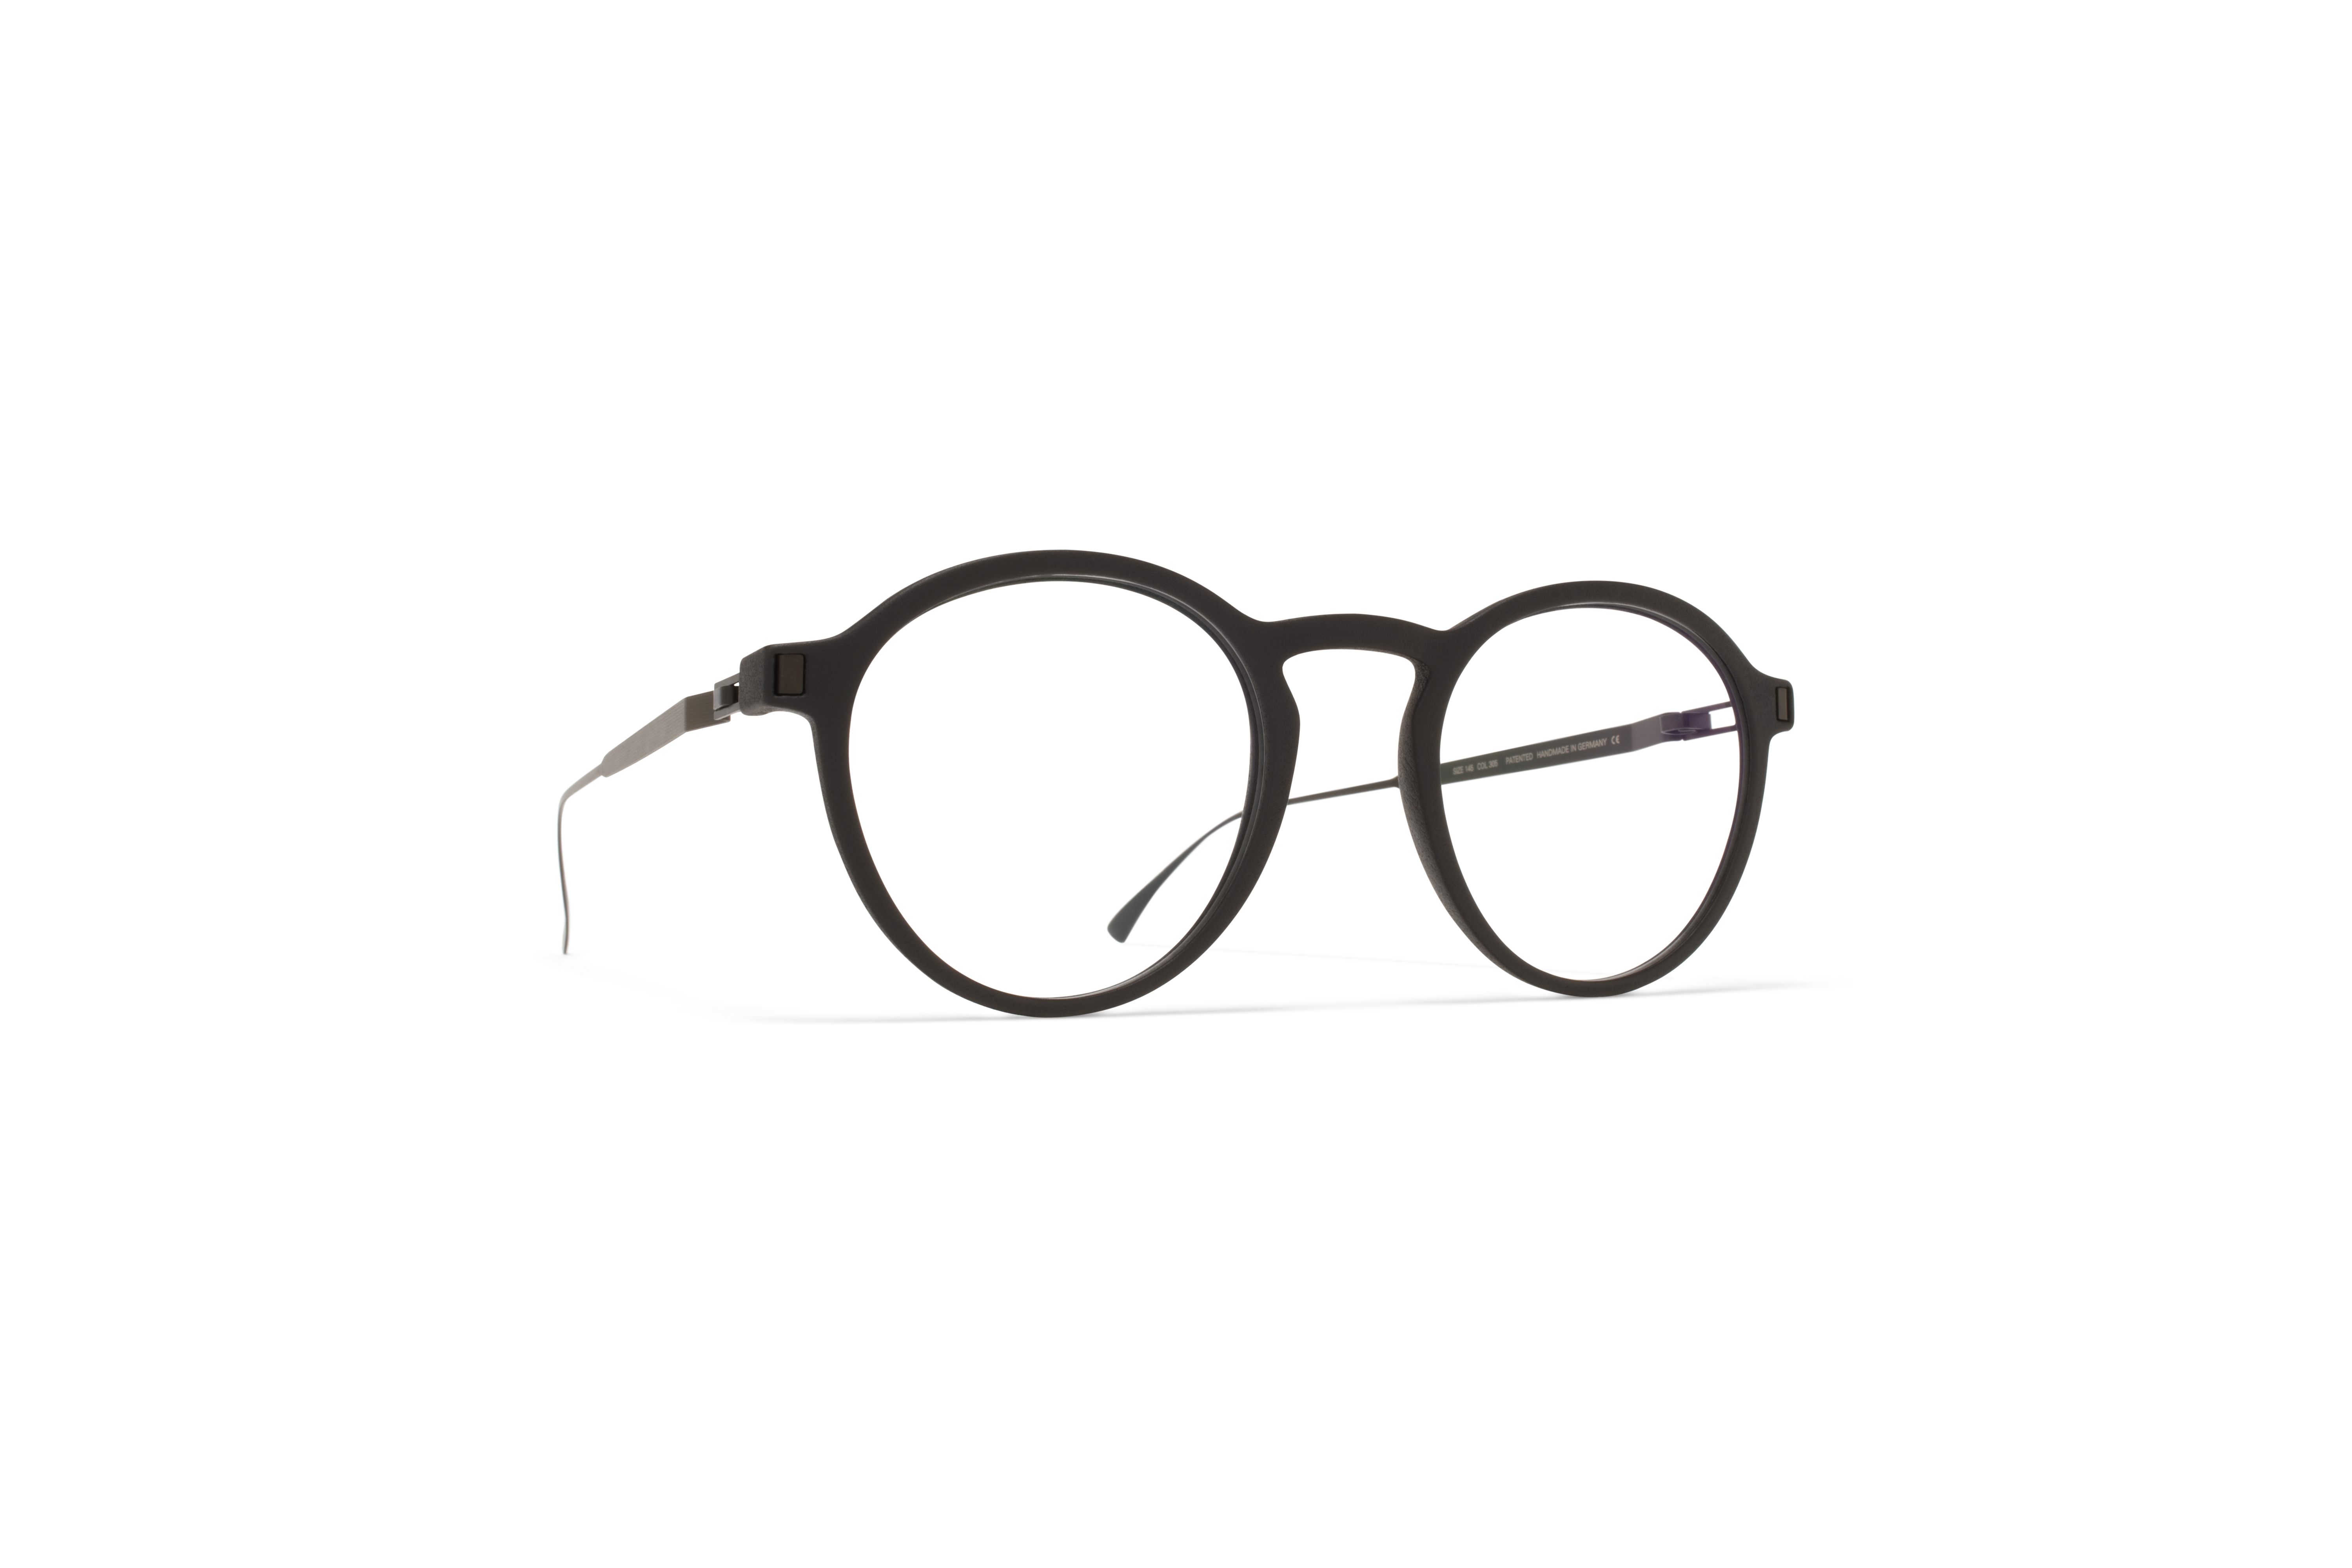 MYKITA Mylon Rx Acai Mh6 Pitch Black Black Clear